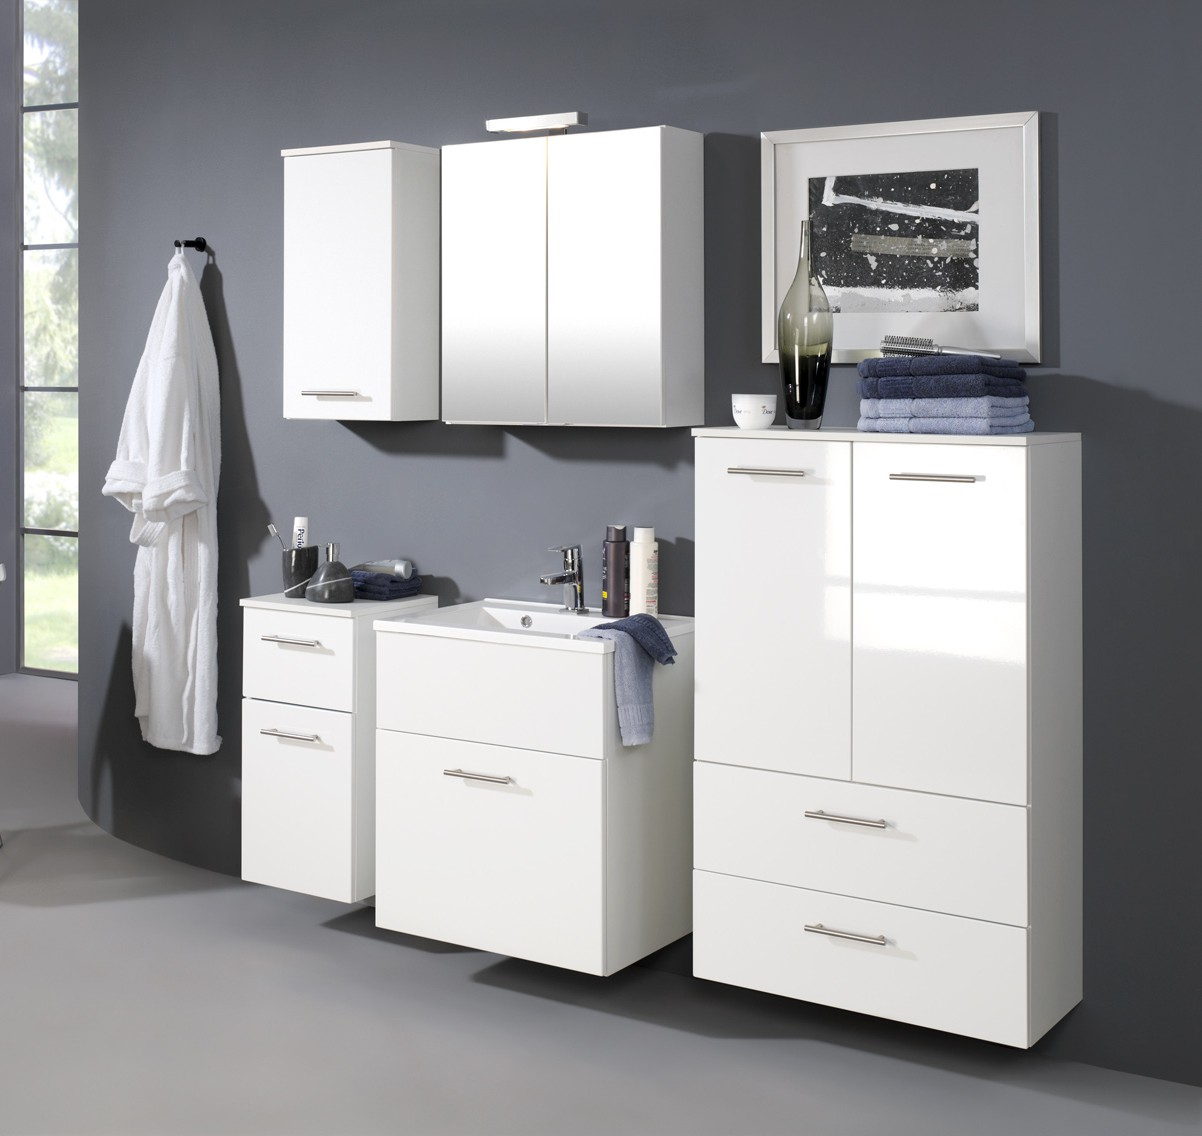 bad midischrank blanco 2 t rig 2 schubladen 70 cm breit hochglanz wei bad bad midischr nke. Black Bedroom Furniture Sets. Home Design Ideas